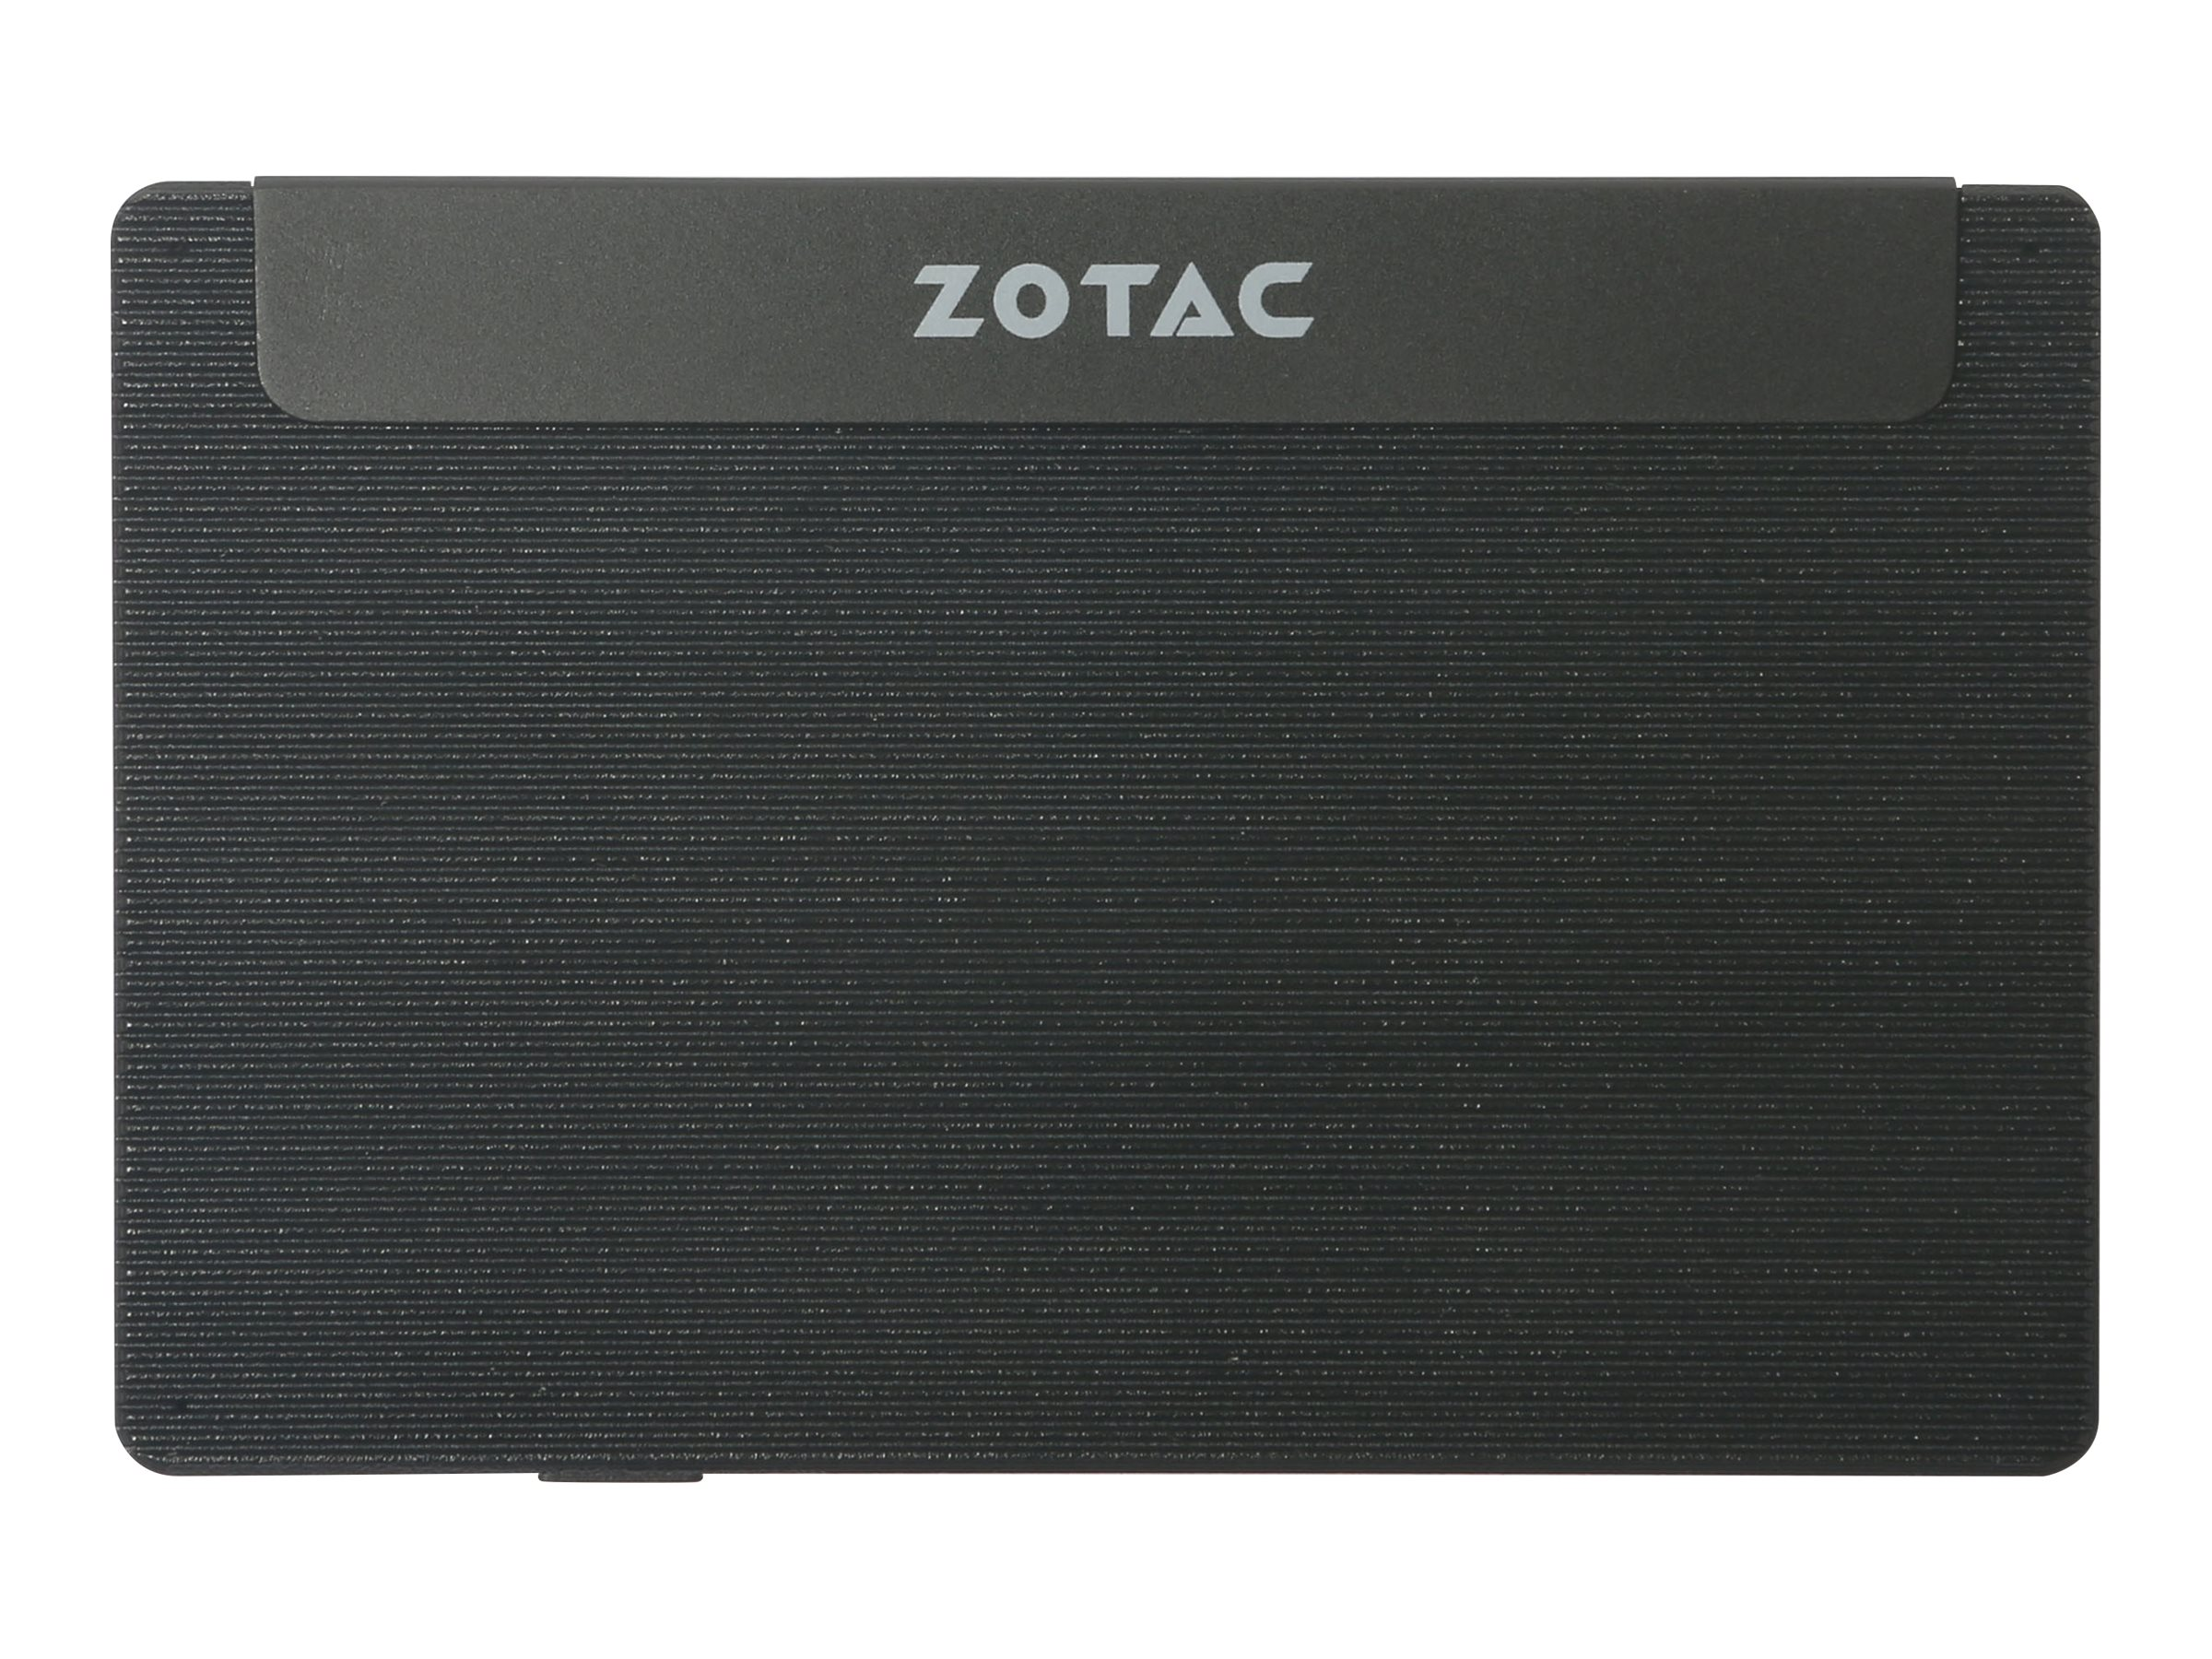 ZOTAC ZBOX P Series PI225 - Mini-PC